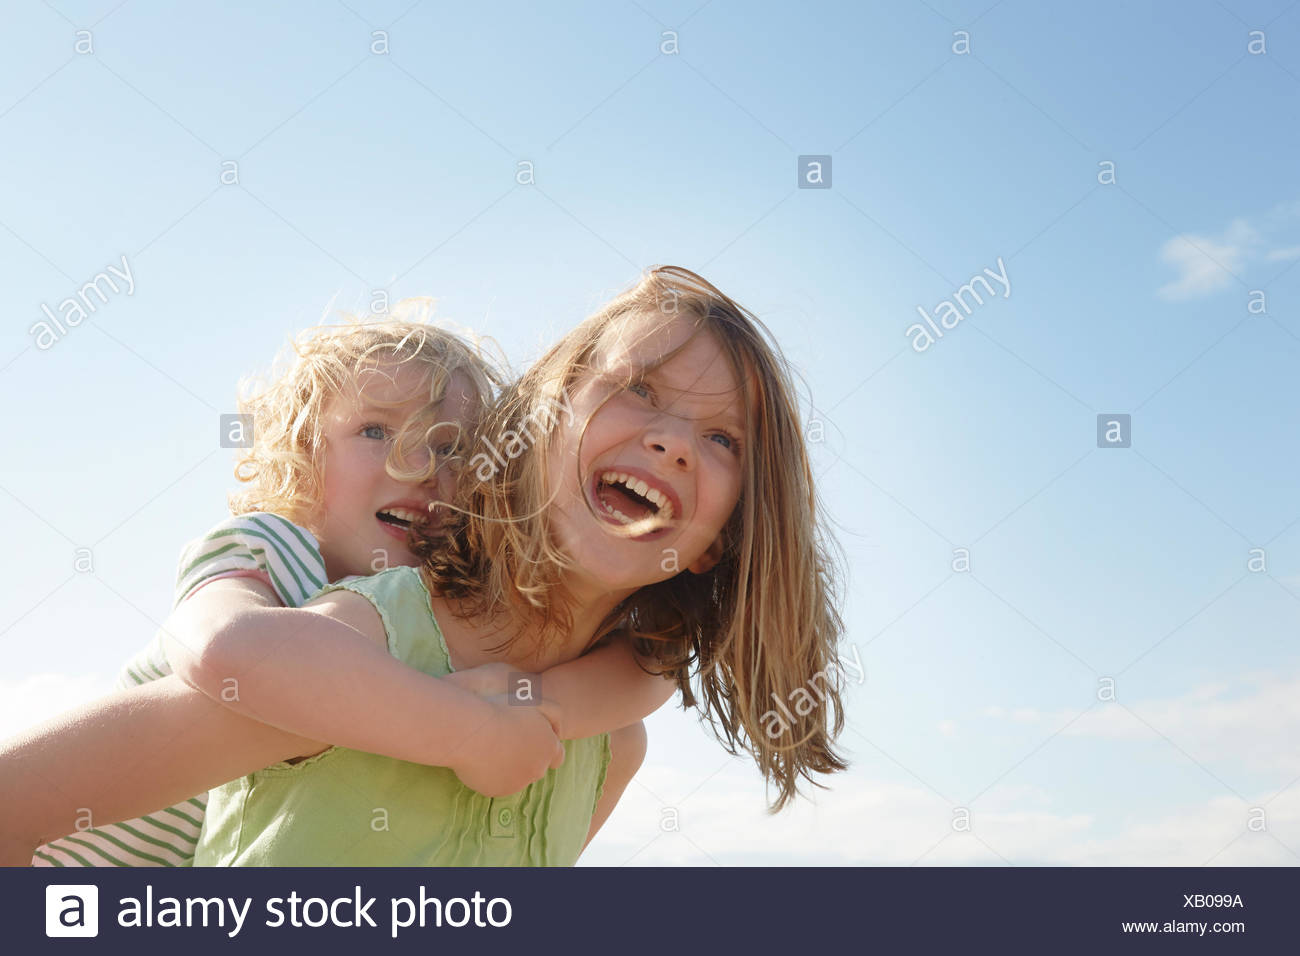 Low angle view of girl giving sister piggy back at coast - Stock Image